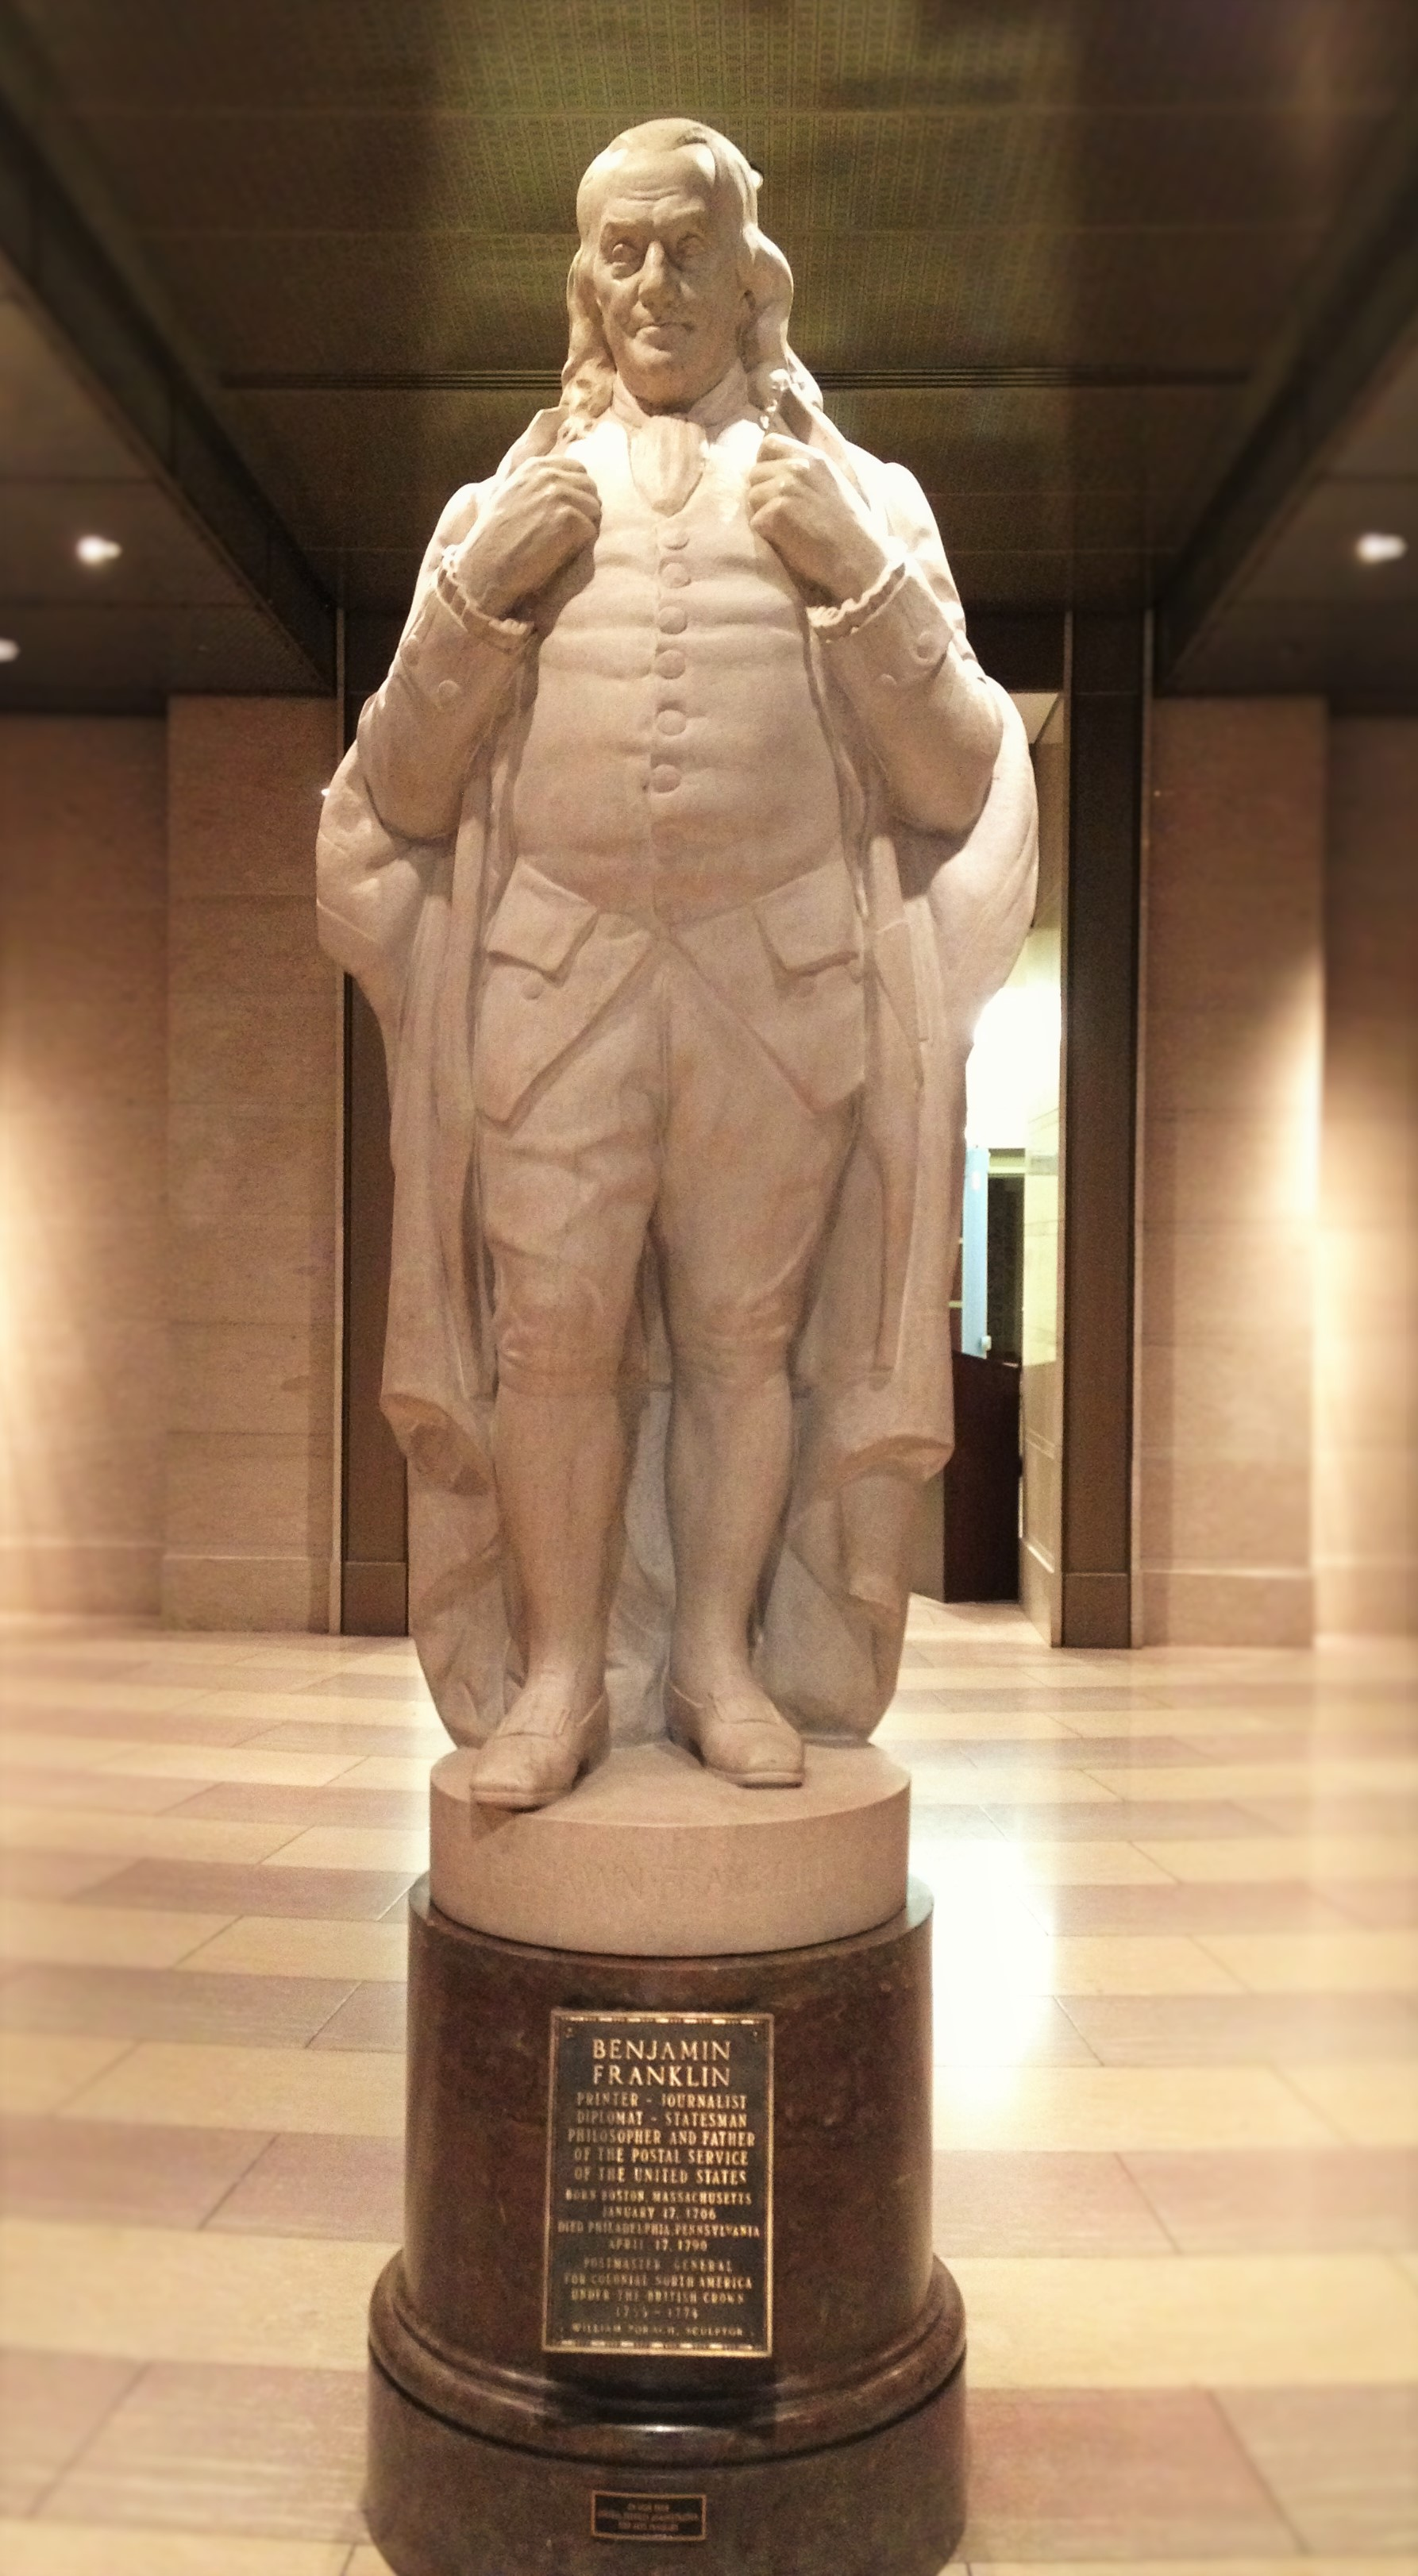 A statue of U.S. Founding Father Benjamin Franklin in the National Postal Museum in Washington, D.C. Photo credit: L. Tripoli